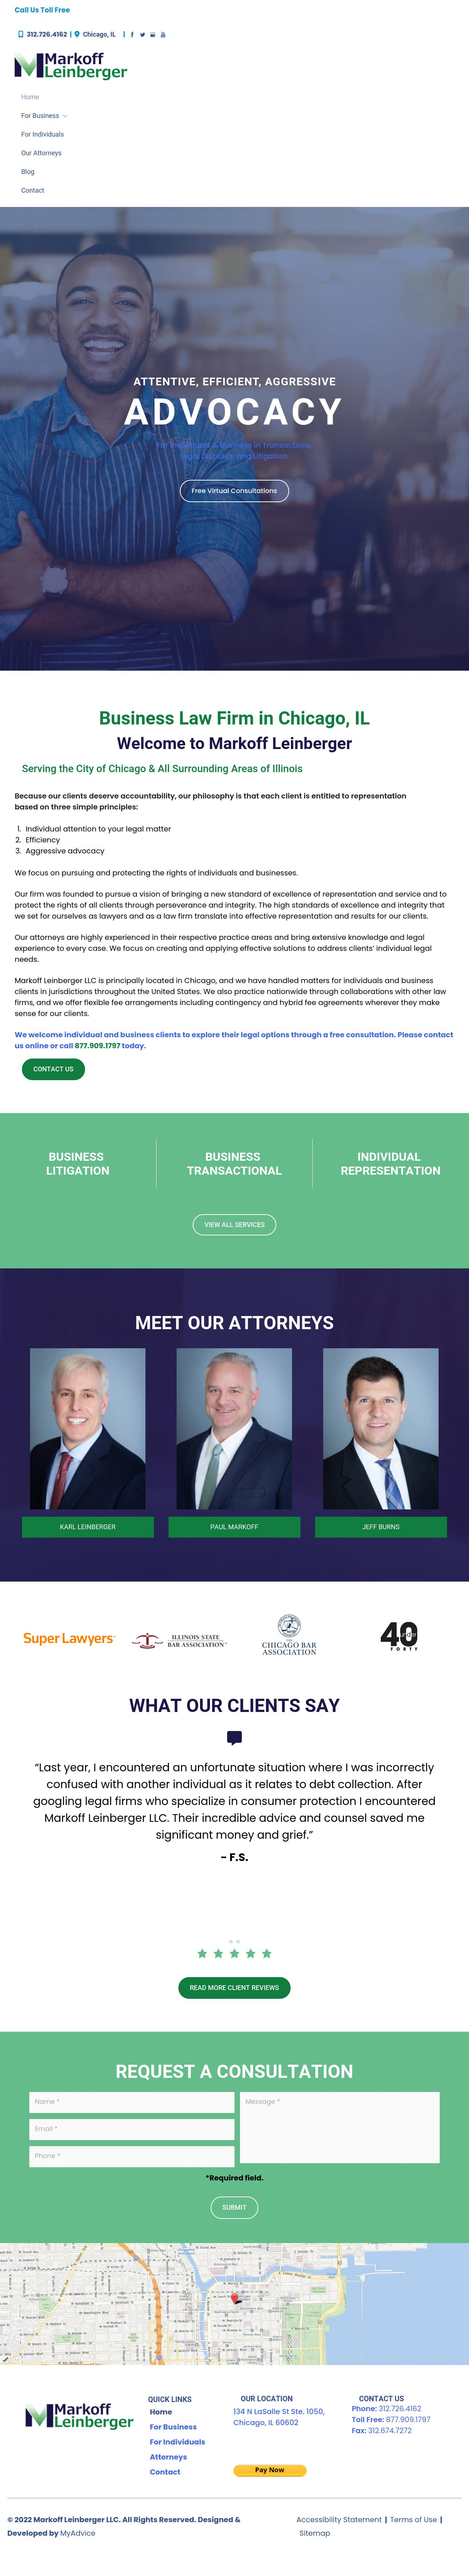 Markoff Leinberger, LLC - Chicago IL Lawyers